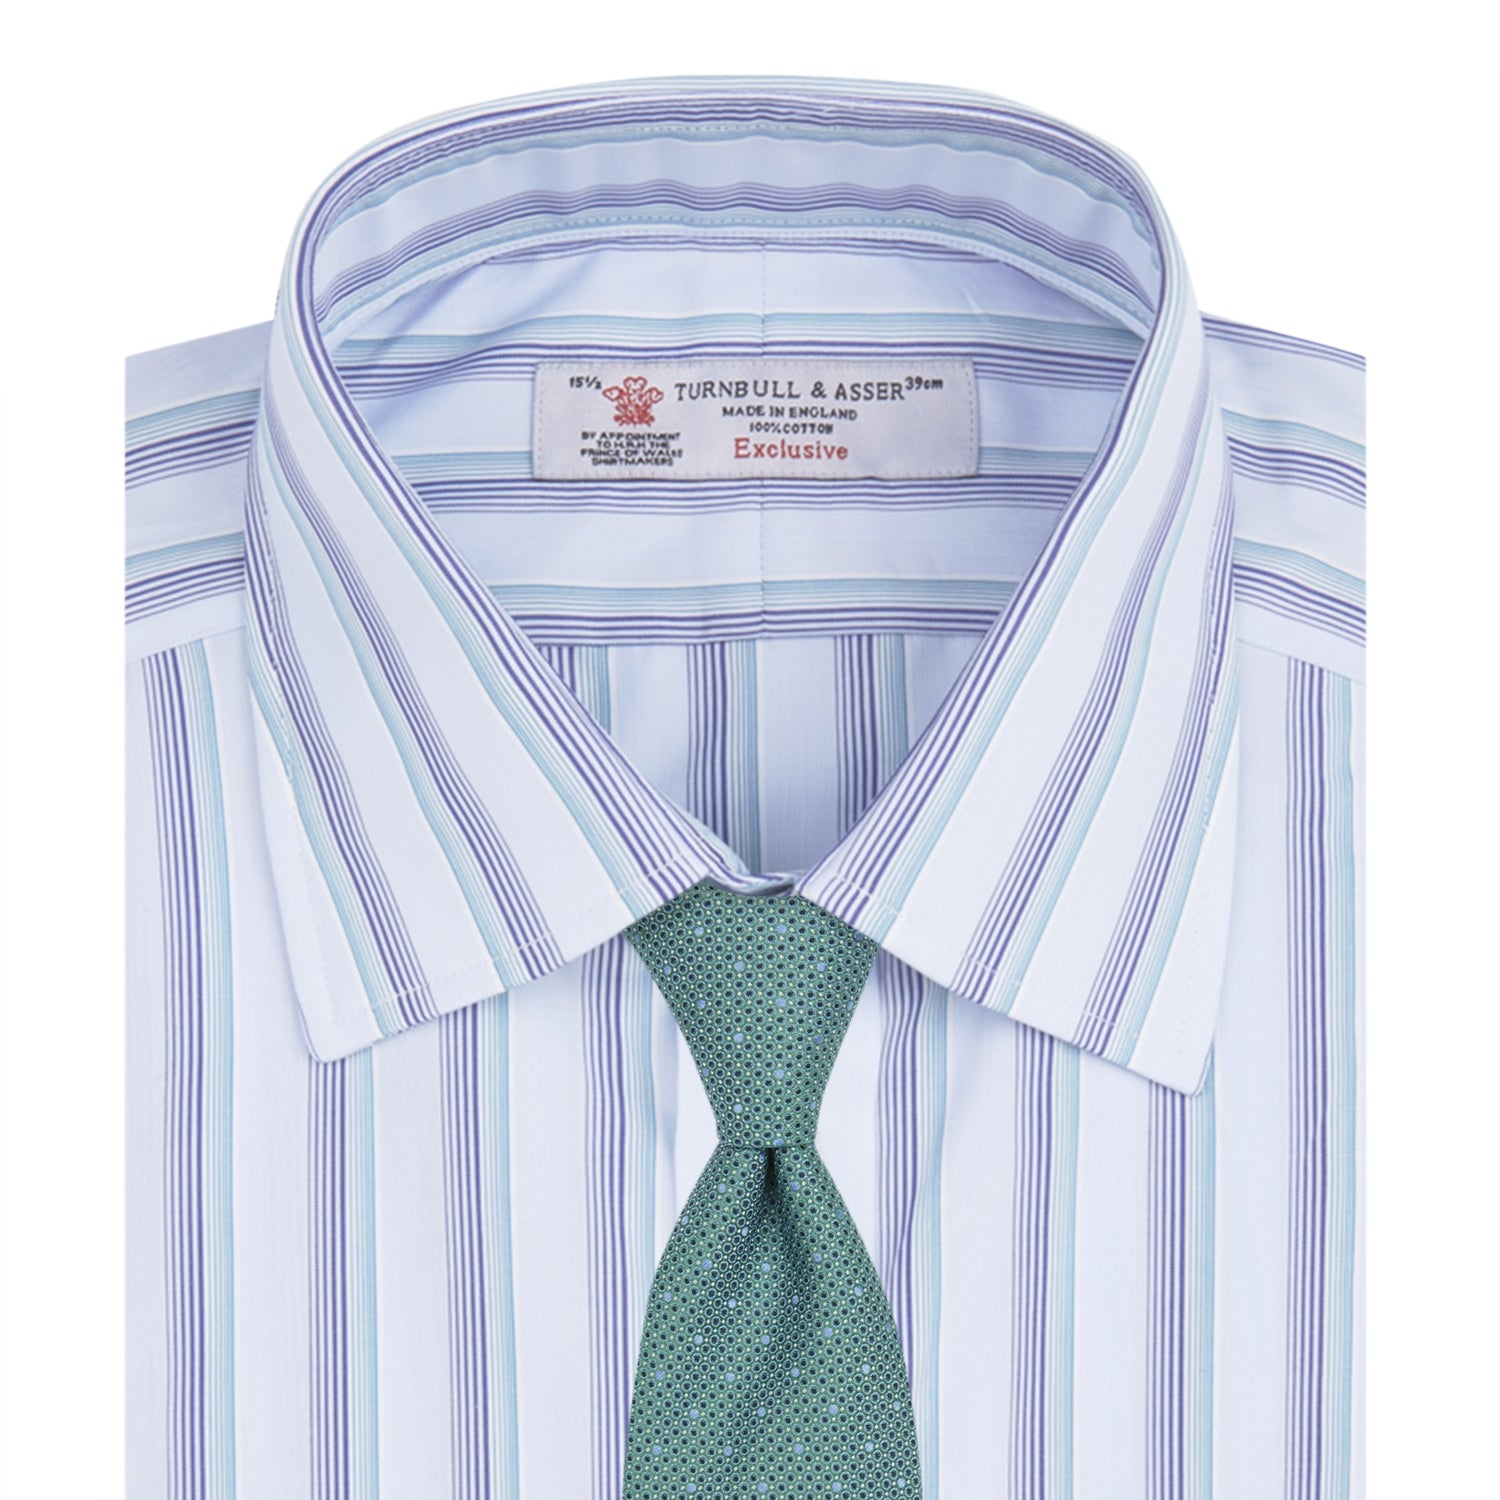 Turquoise and Navy Two Tone Stripe Shirt with T&A Collar and Button Cuffs